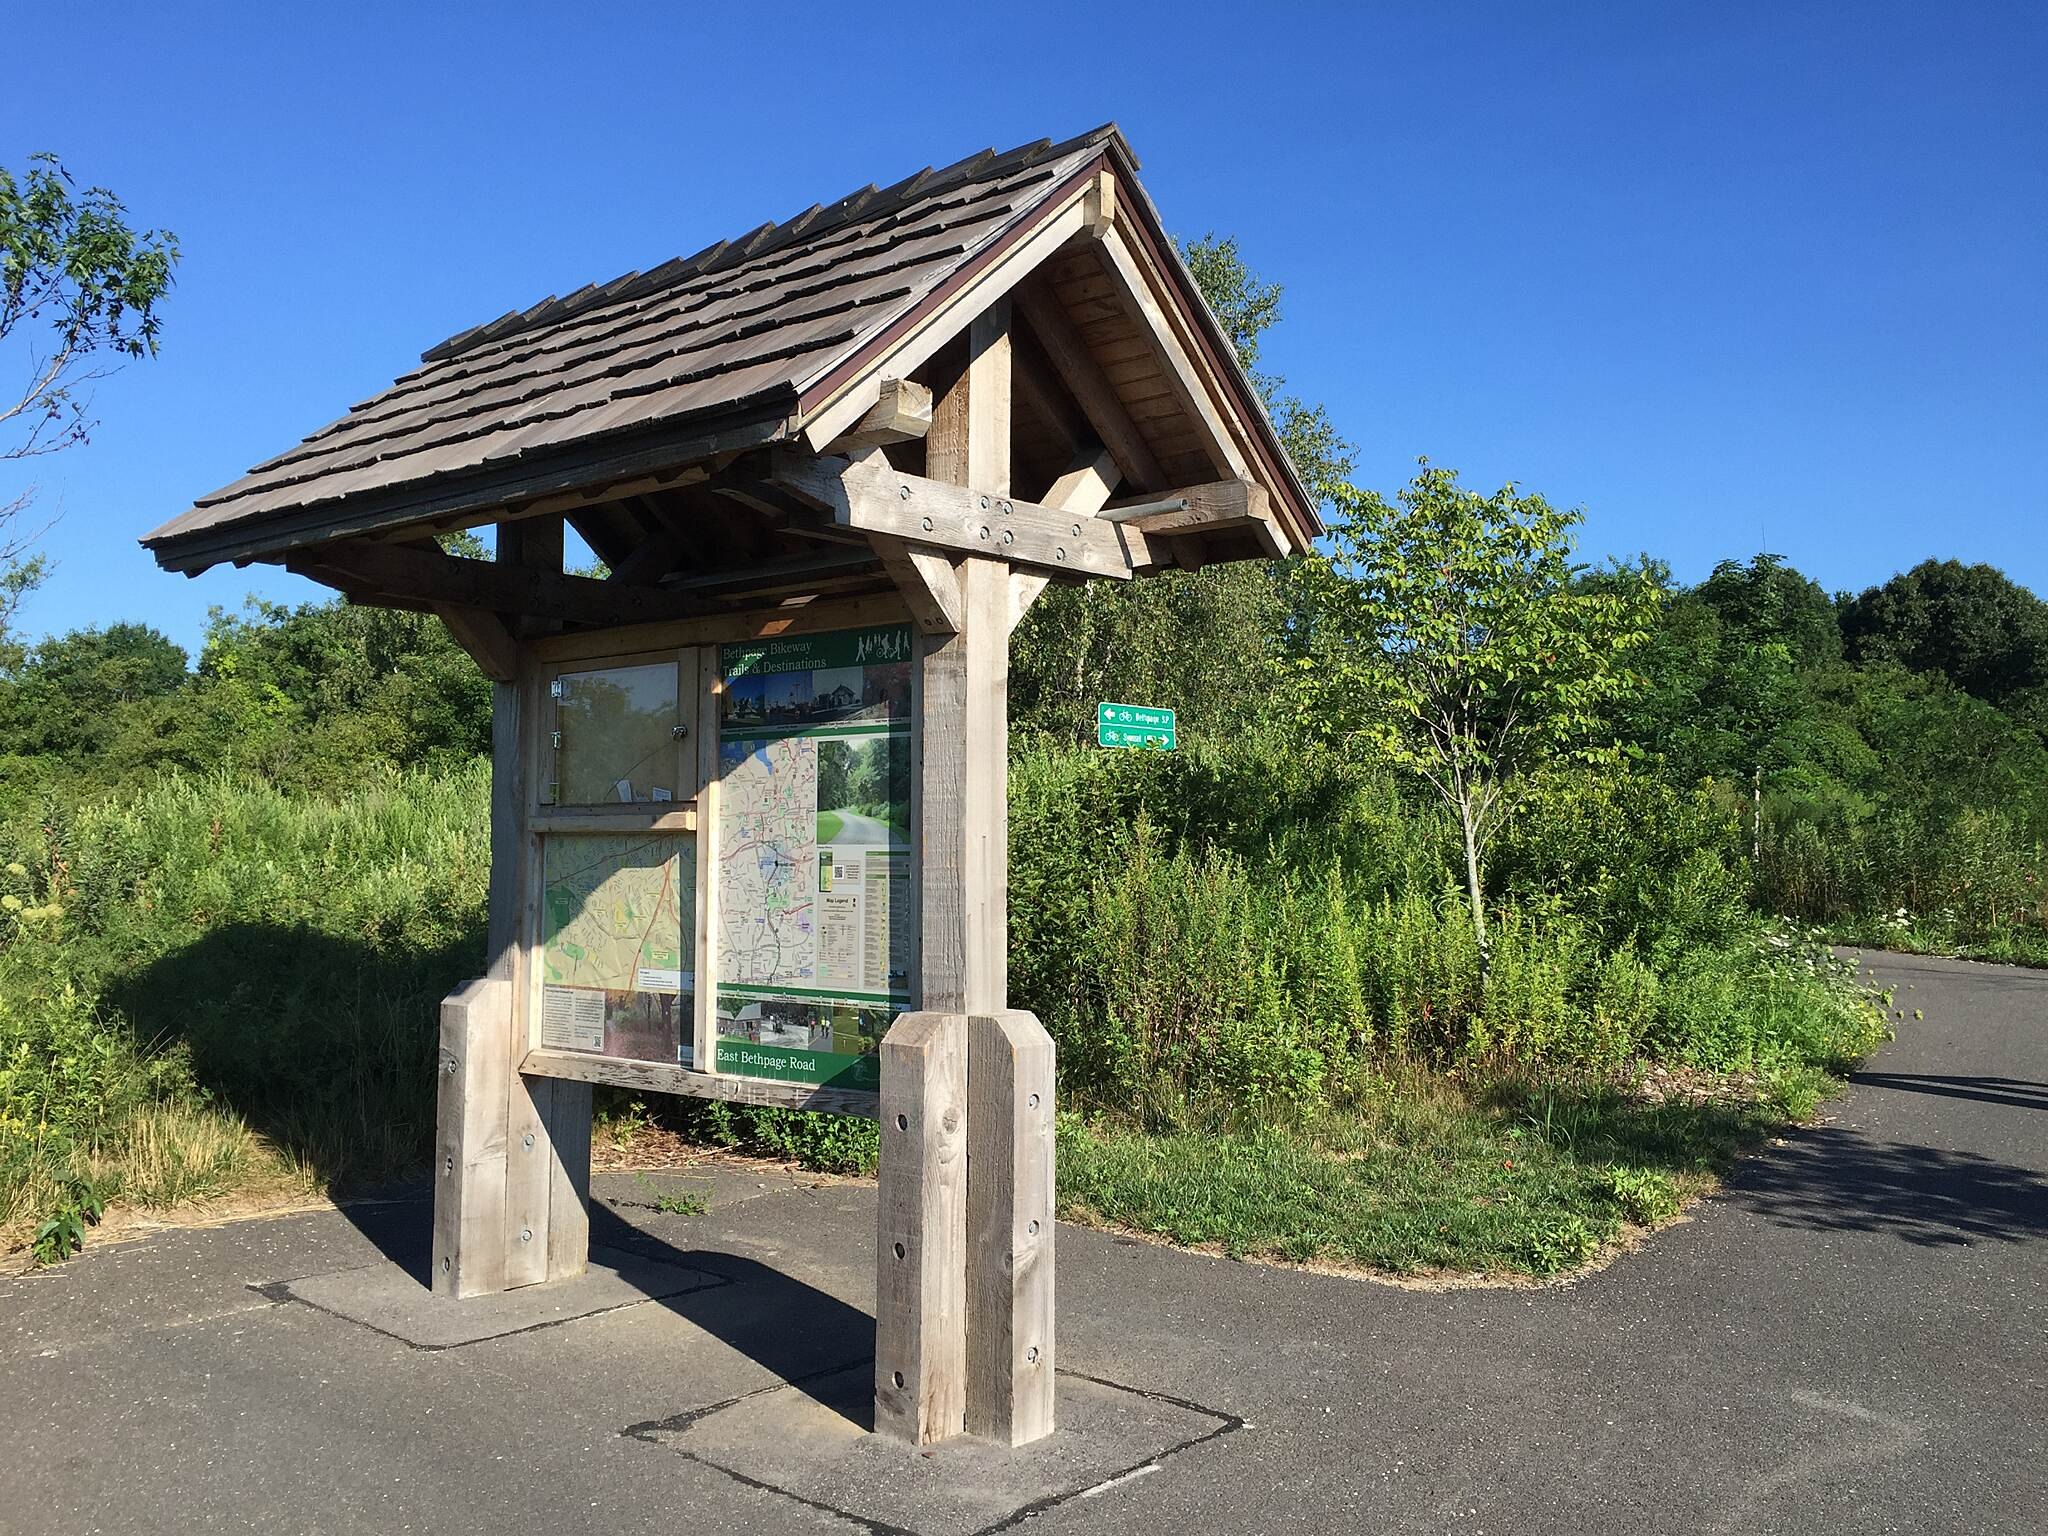 Bethpage Bikeway Informational kiosk Informational kiosk at parking area on E. Bethpage Road, just north of Old Country Road.